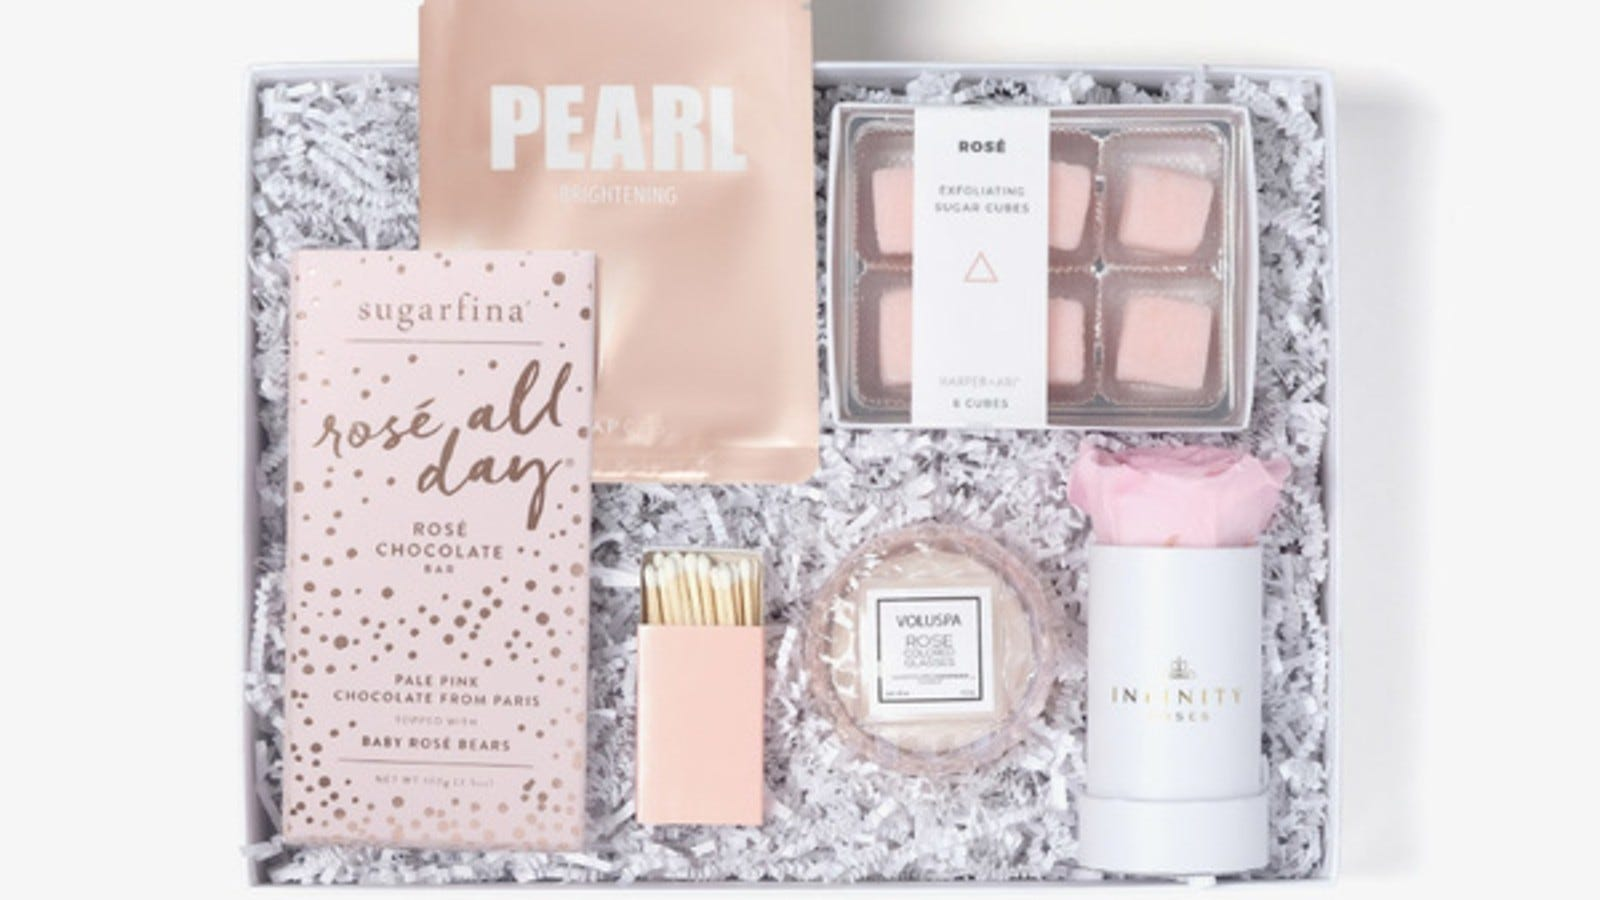 pink and white gift box that includes a sheet mask, exfoliating cubes, a candle, chocolate bar, and a pink rose